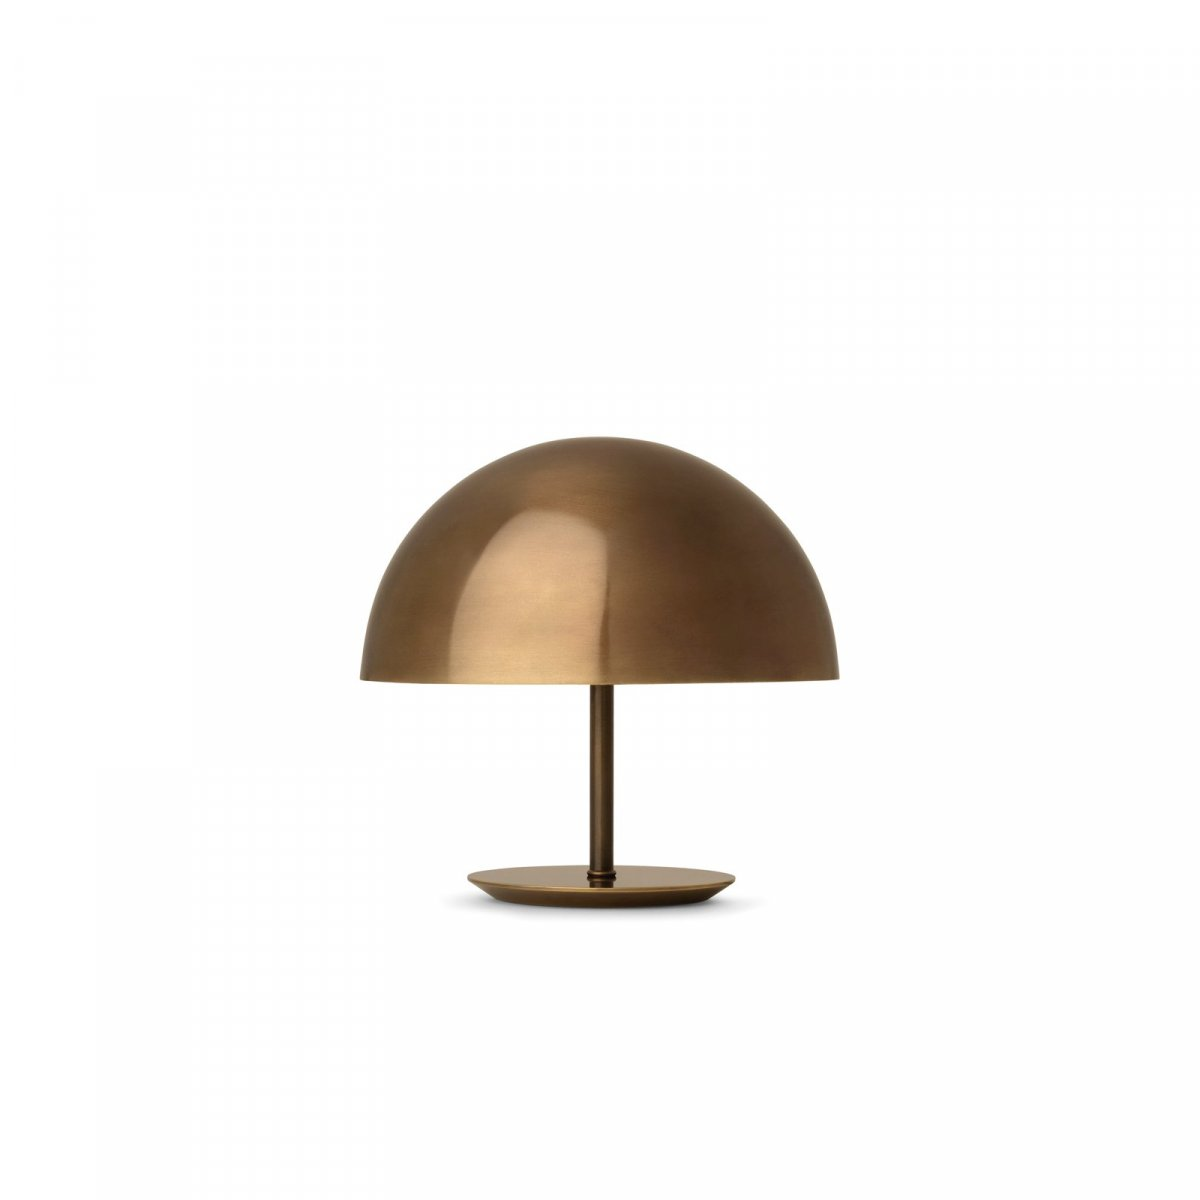 Baby Dome Lamp, brass.